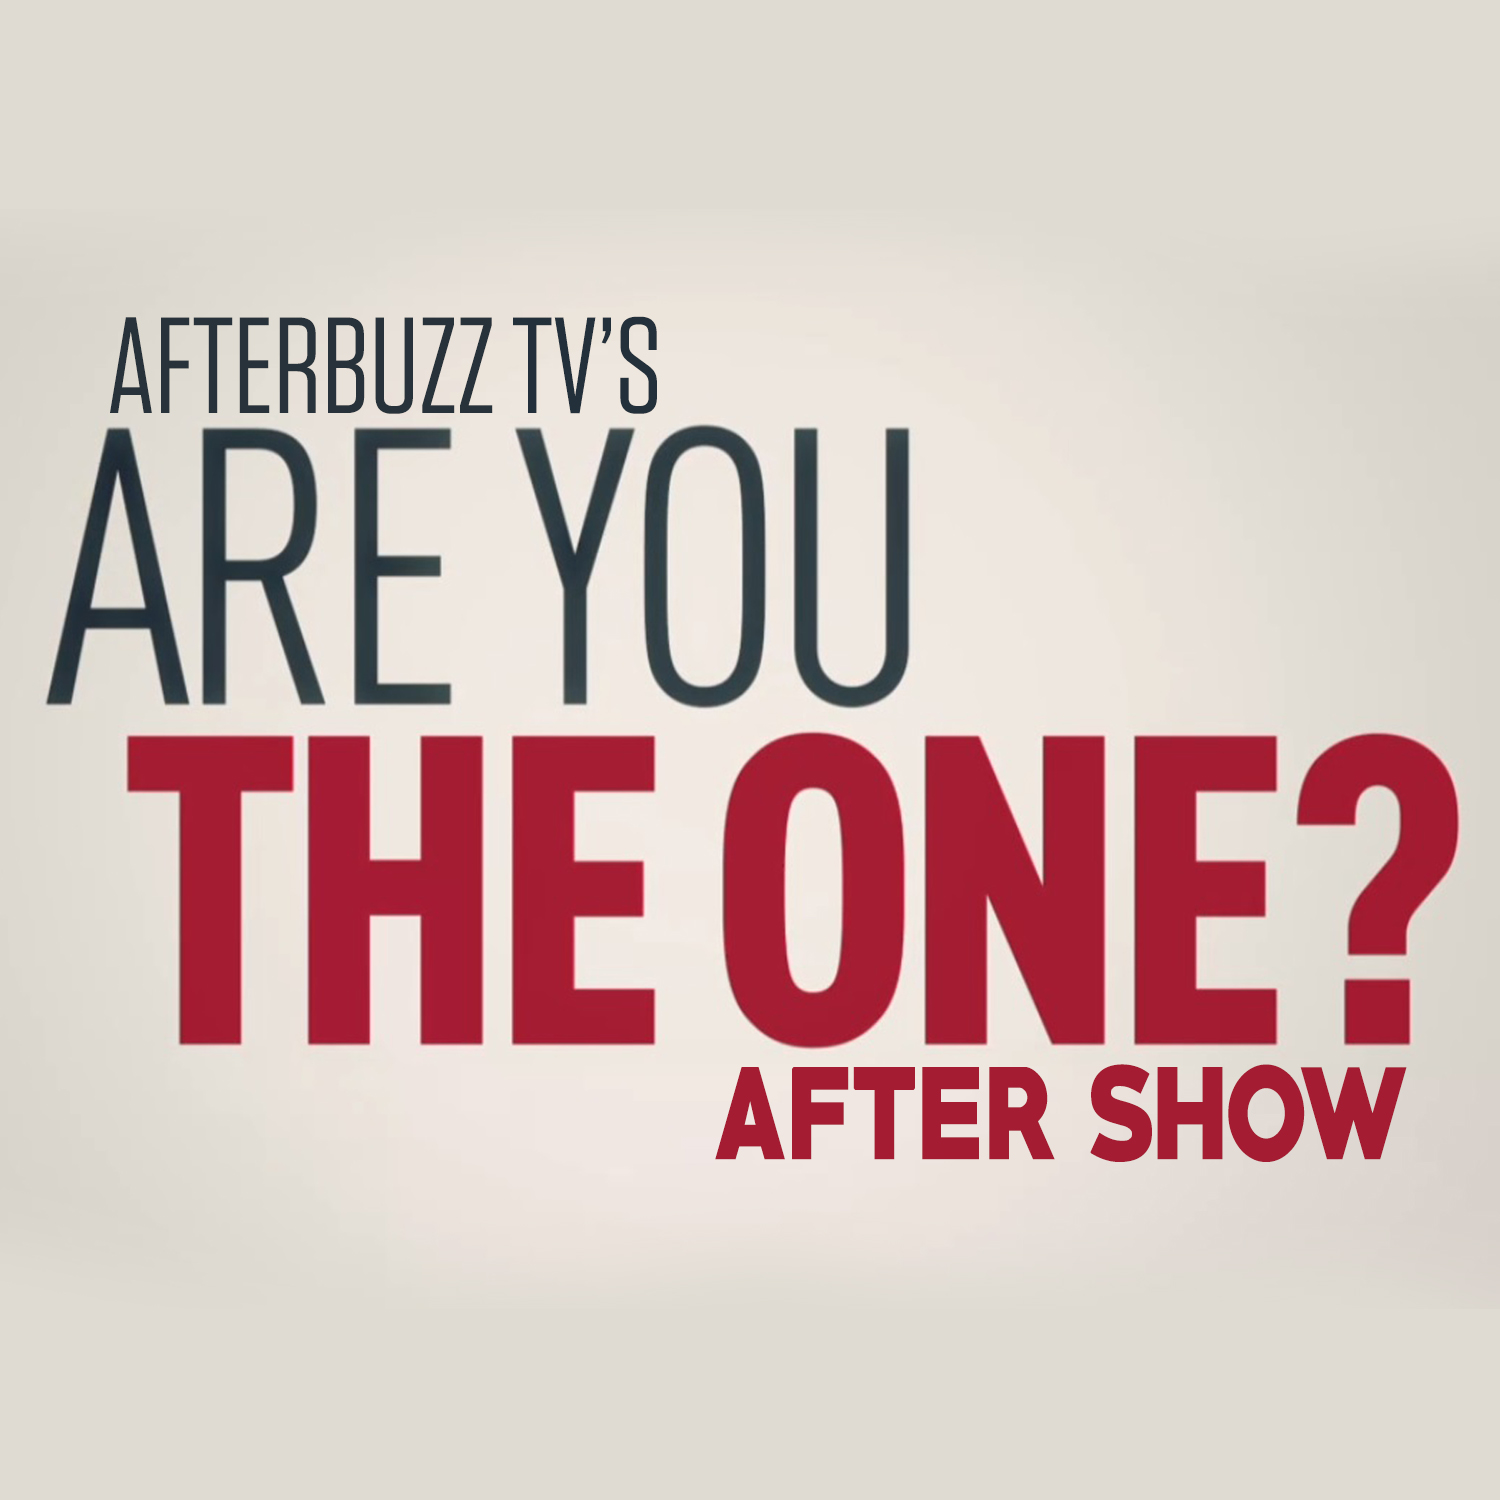 Are You The One? After Show